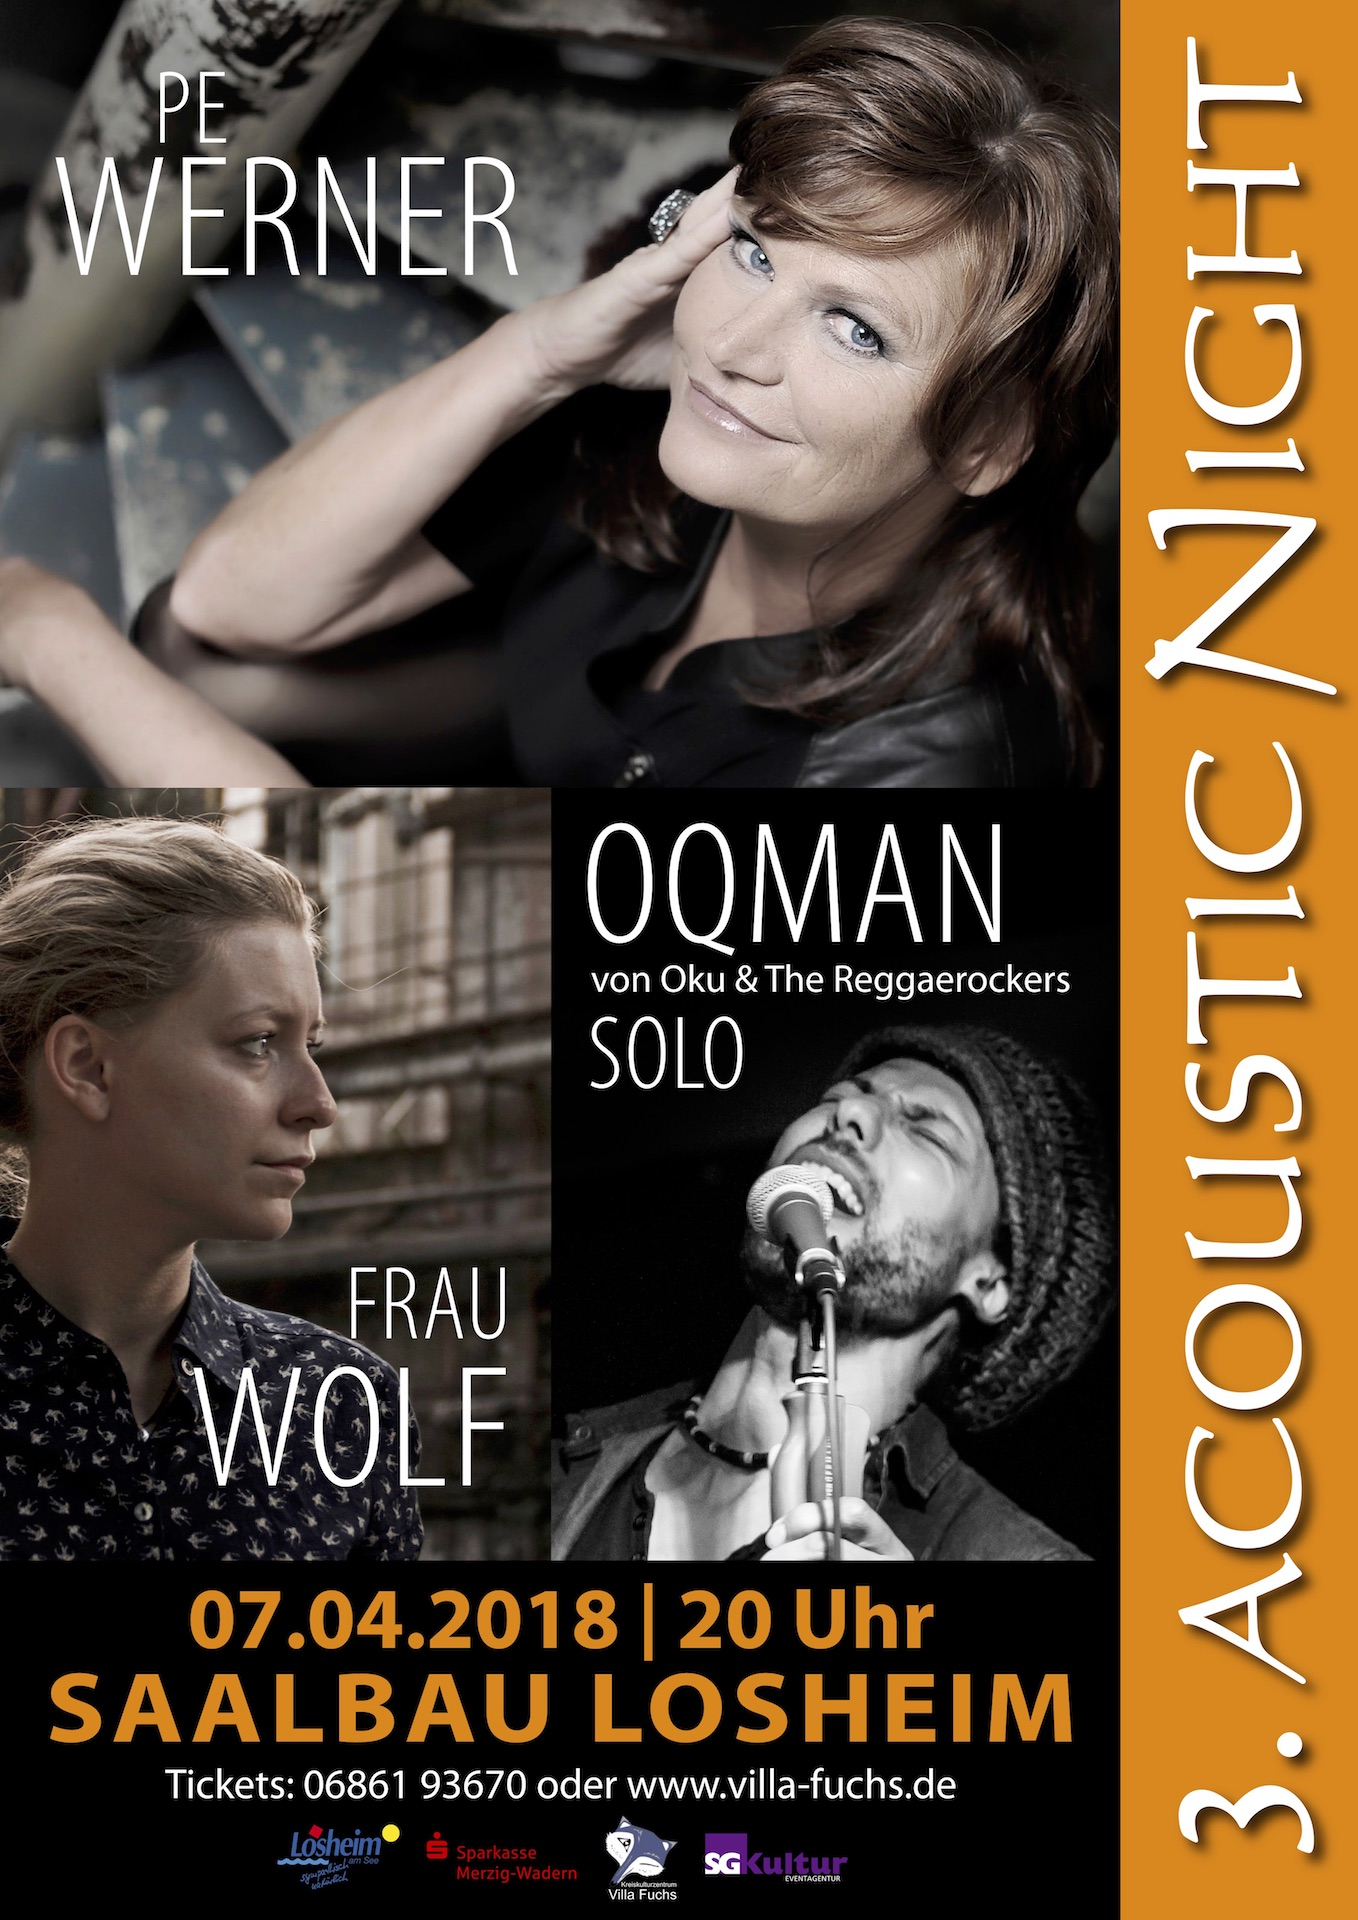 PopRat Event-Tipp: 3. Acoustic Night am 07.04.2018 im Saalbau Losheim